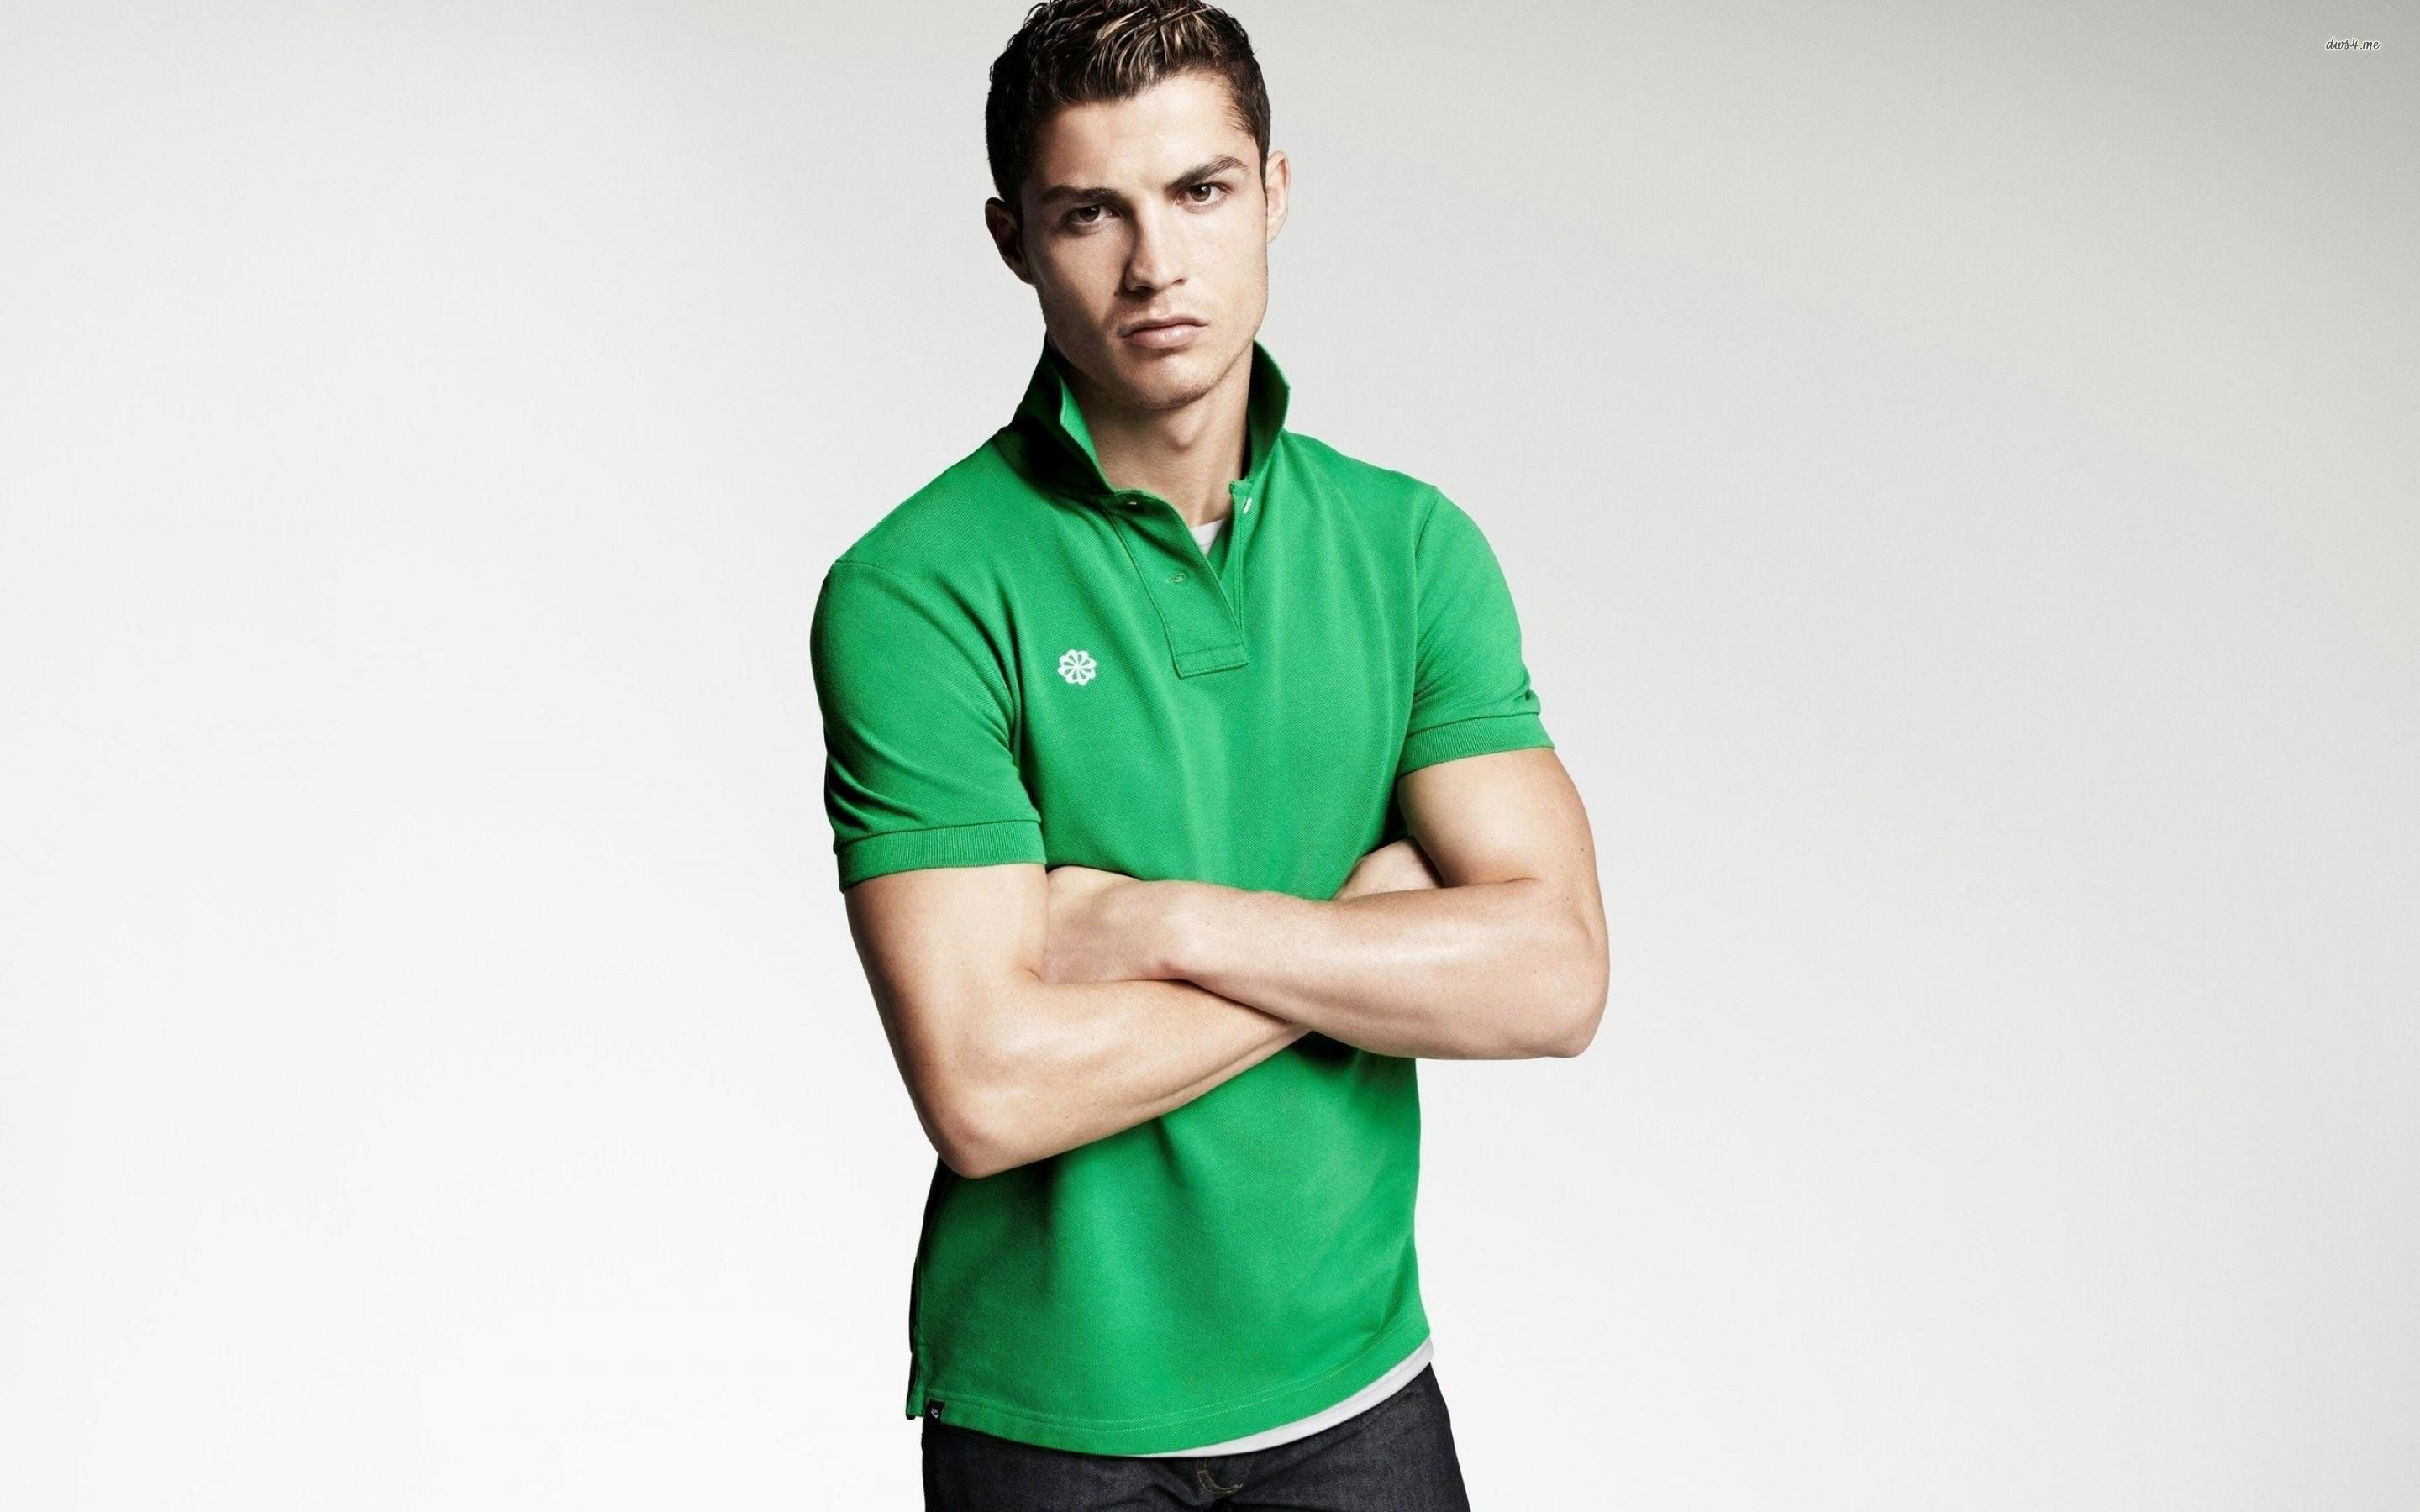 Cristiano Ronaldo Wallpapers HD green t shirt smart